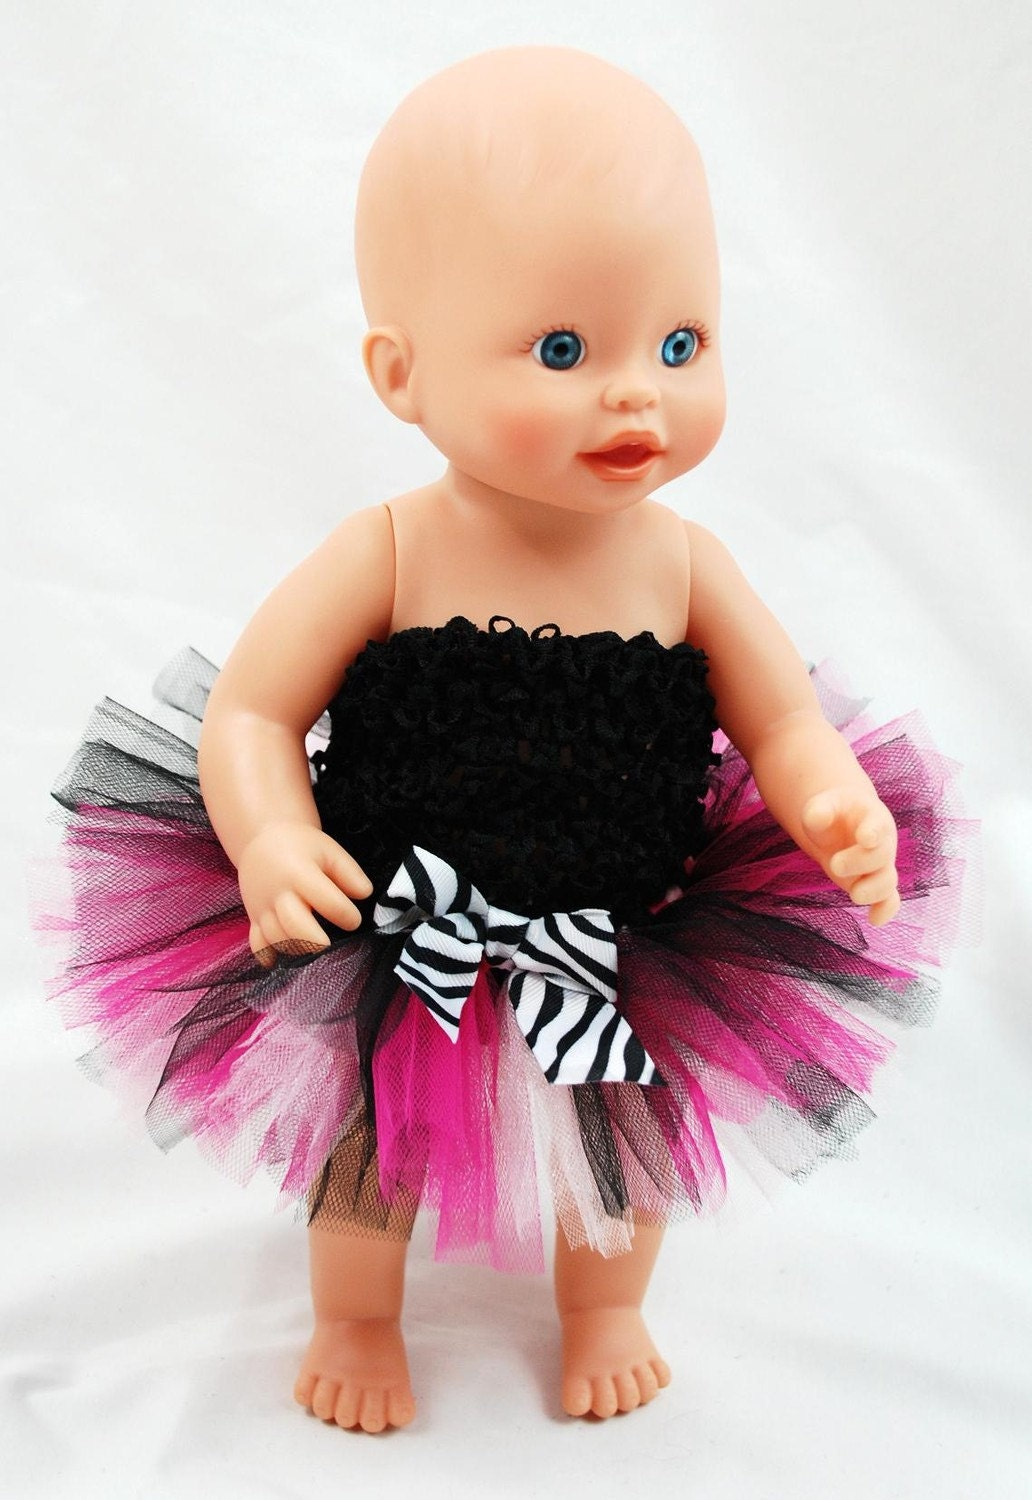 Hot Pink Zebra Doll Tutu - Fits American Girl Dolls and Baby Dolls